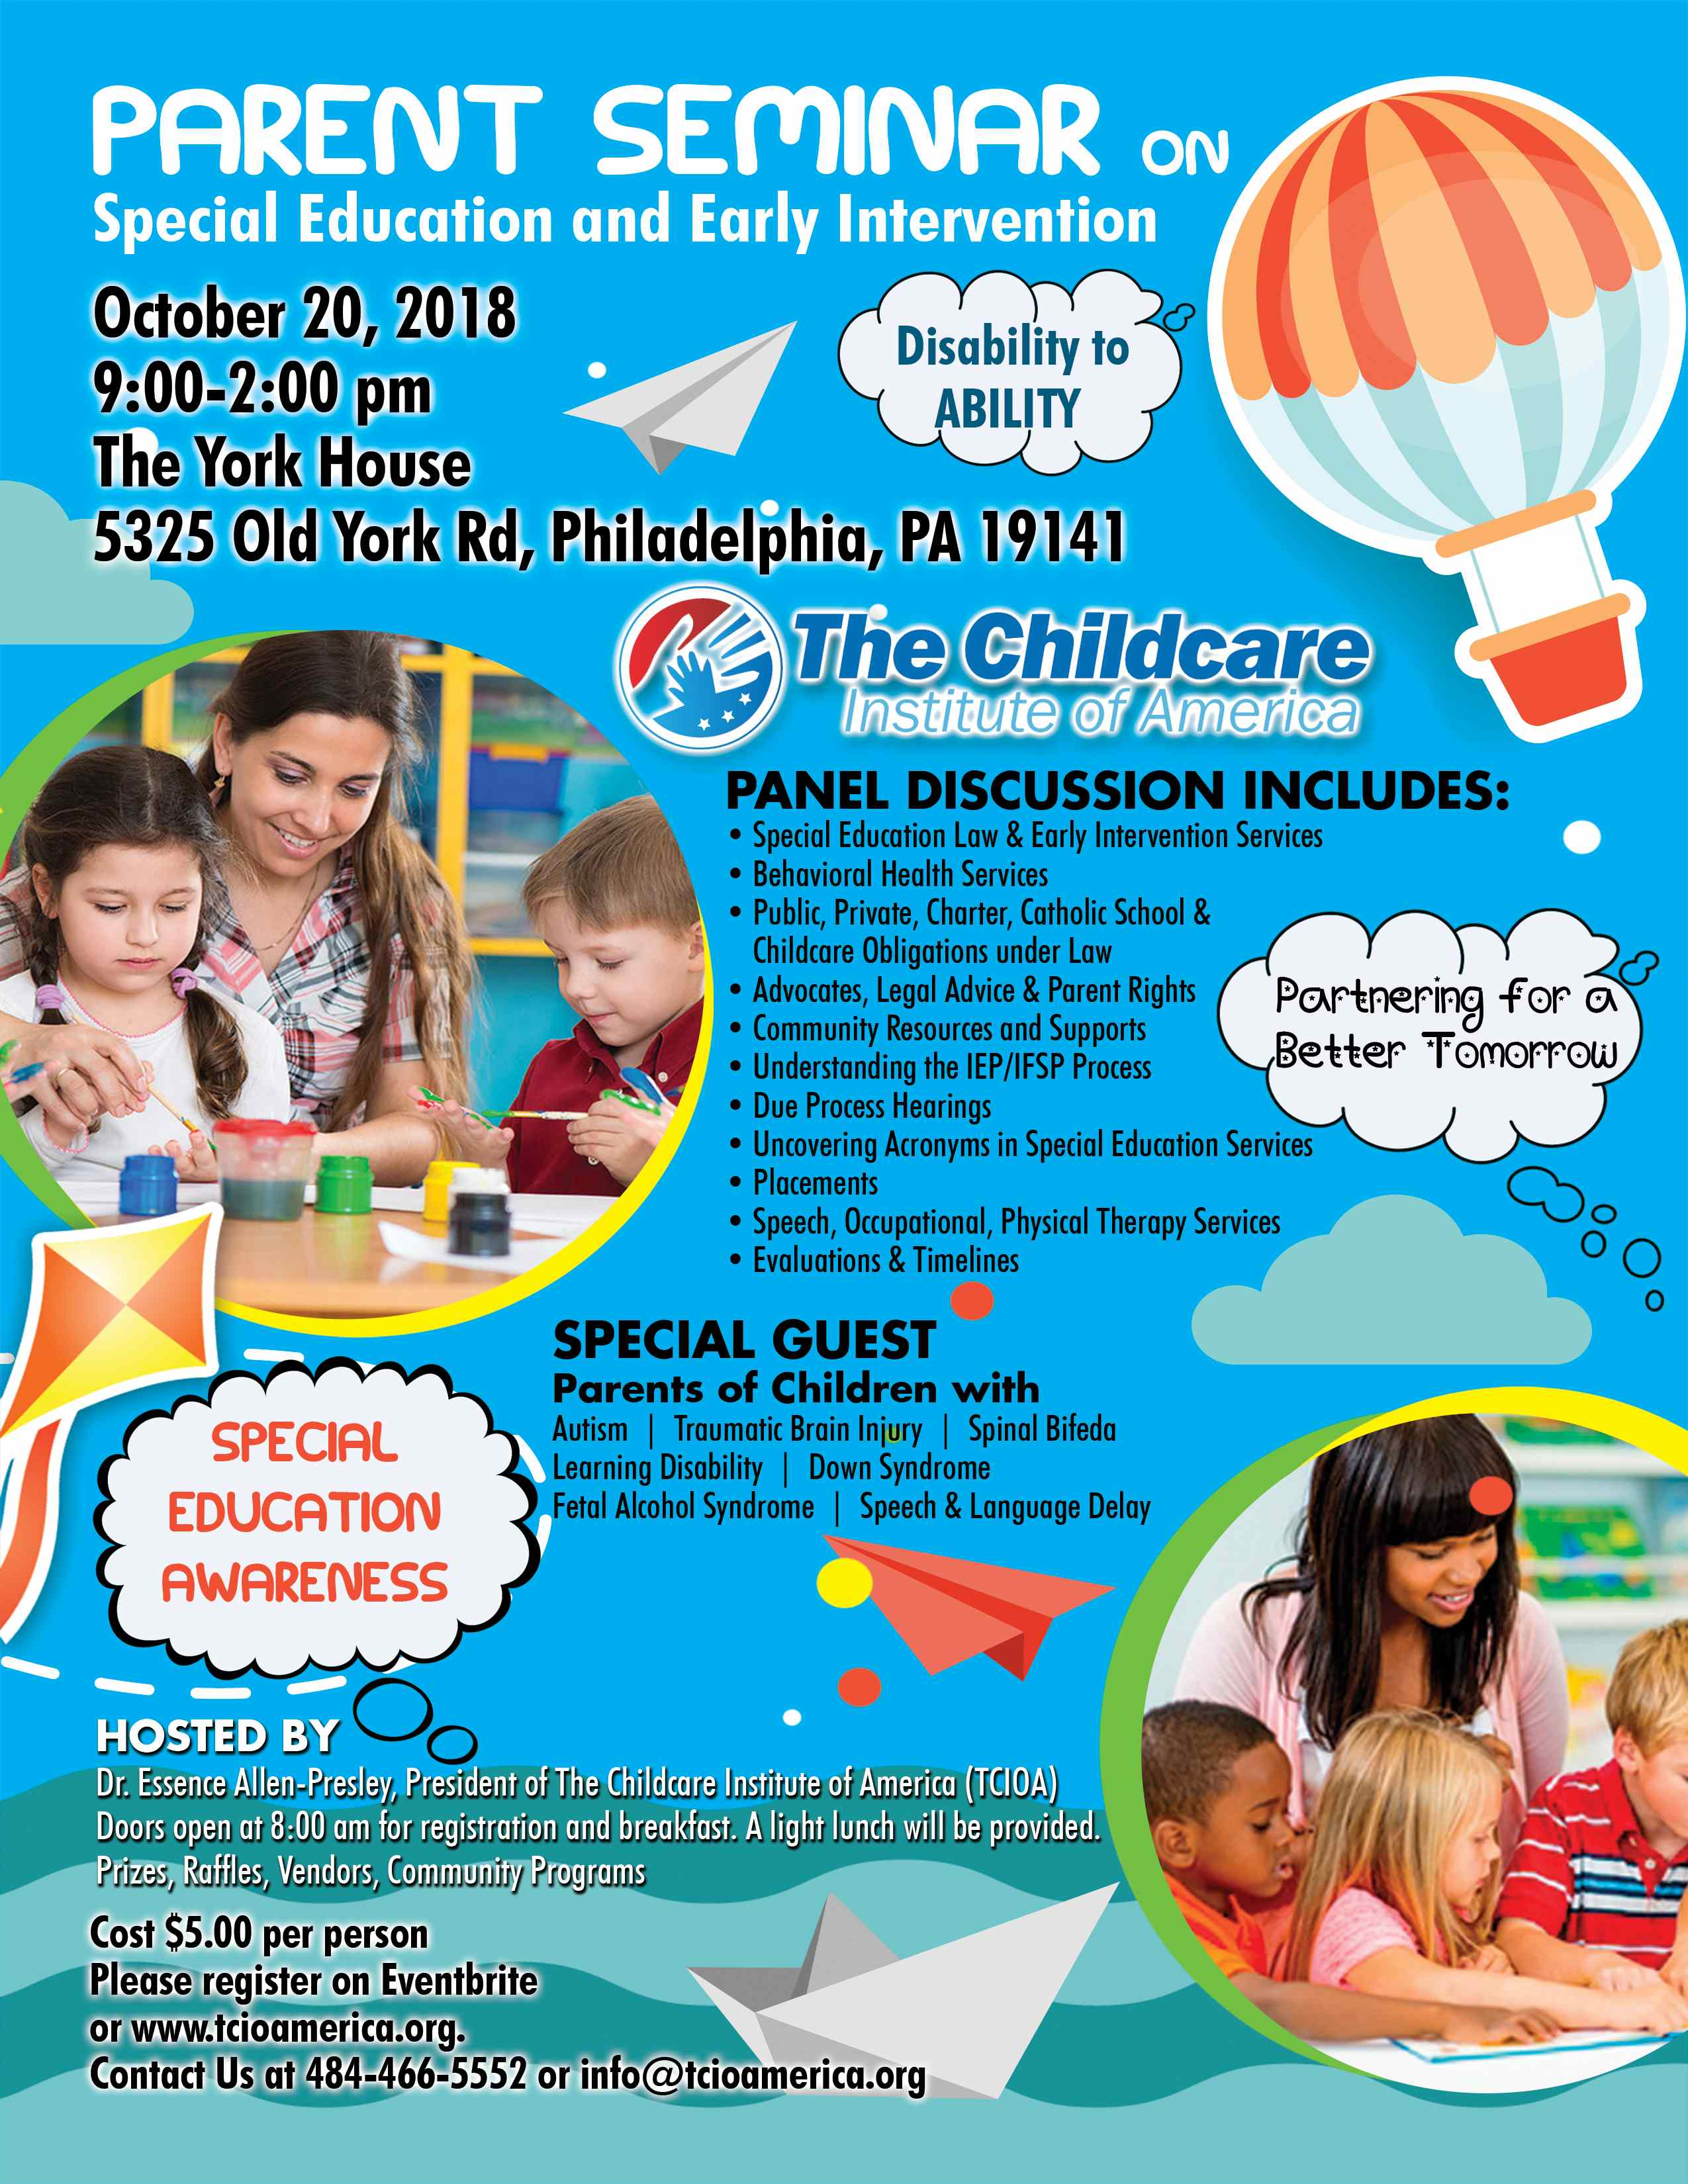 Parent Seminar on Early Intervention and Special Education